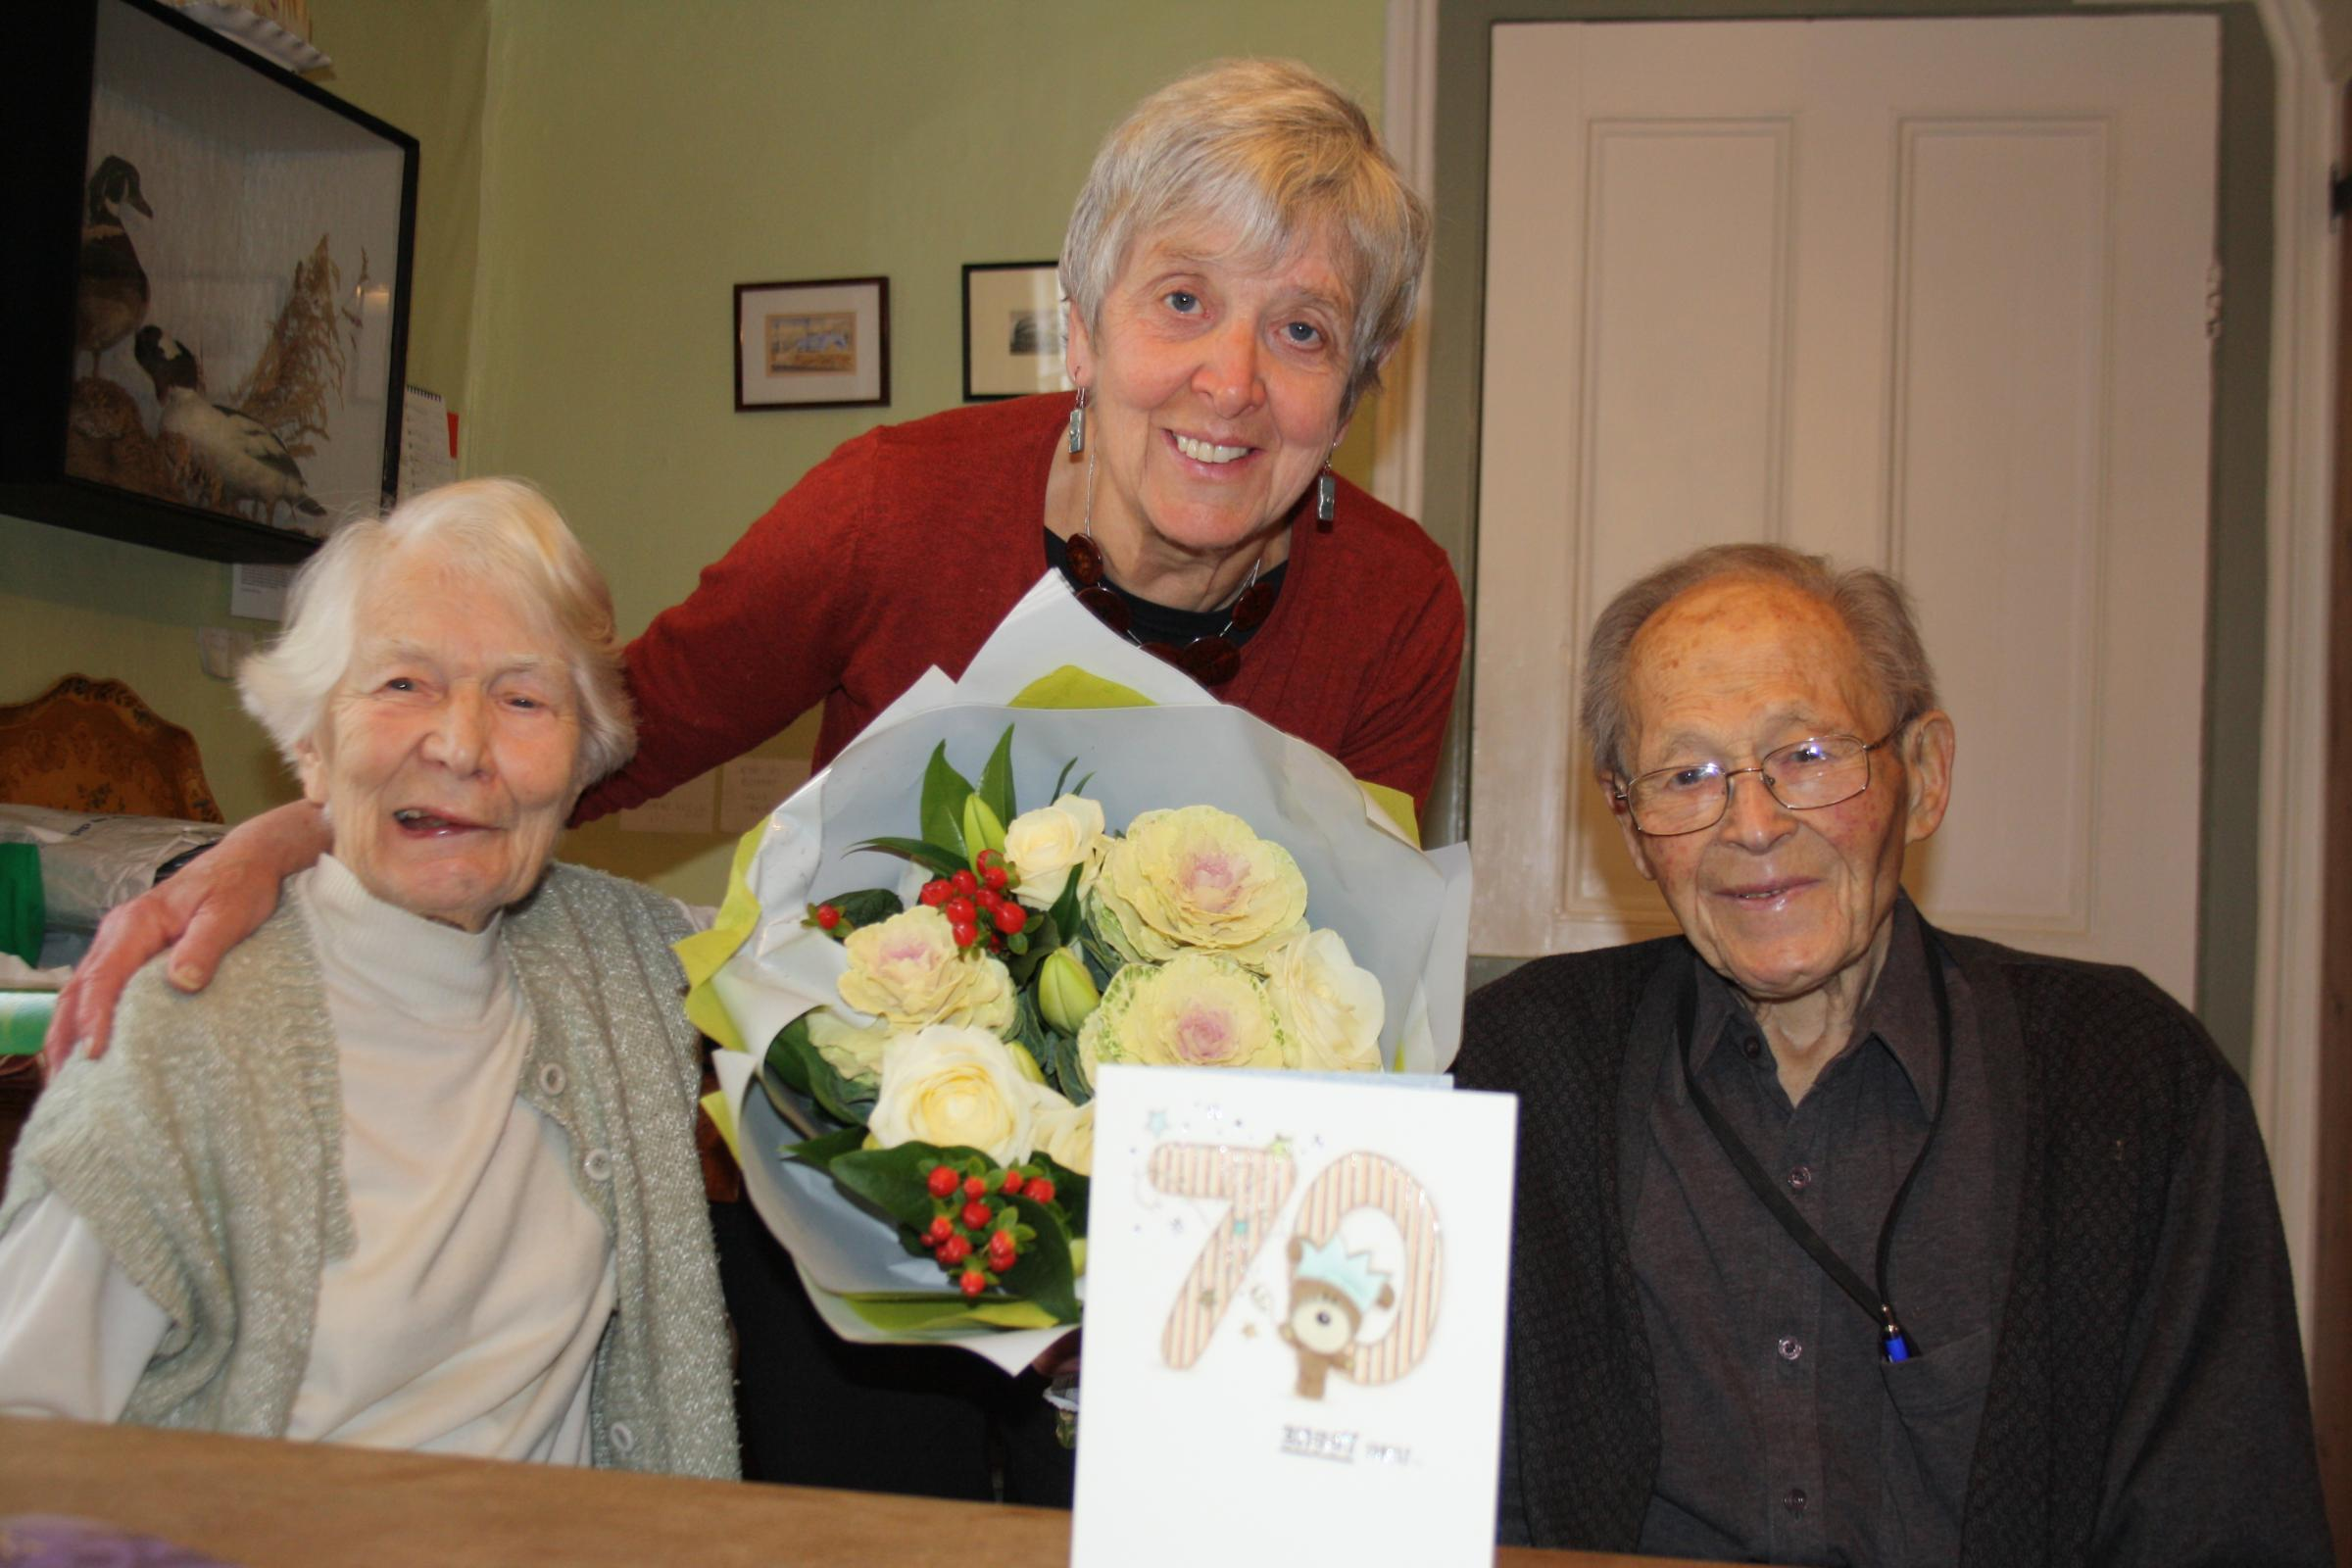 Care giver Liz Race with Eleanor, 90, and Ken Fuller, 95, at their home in Wallingford